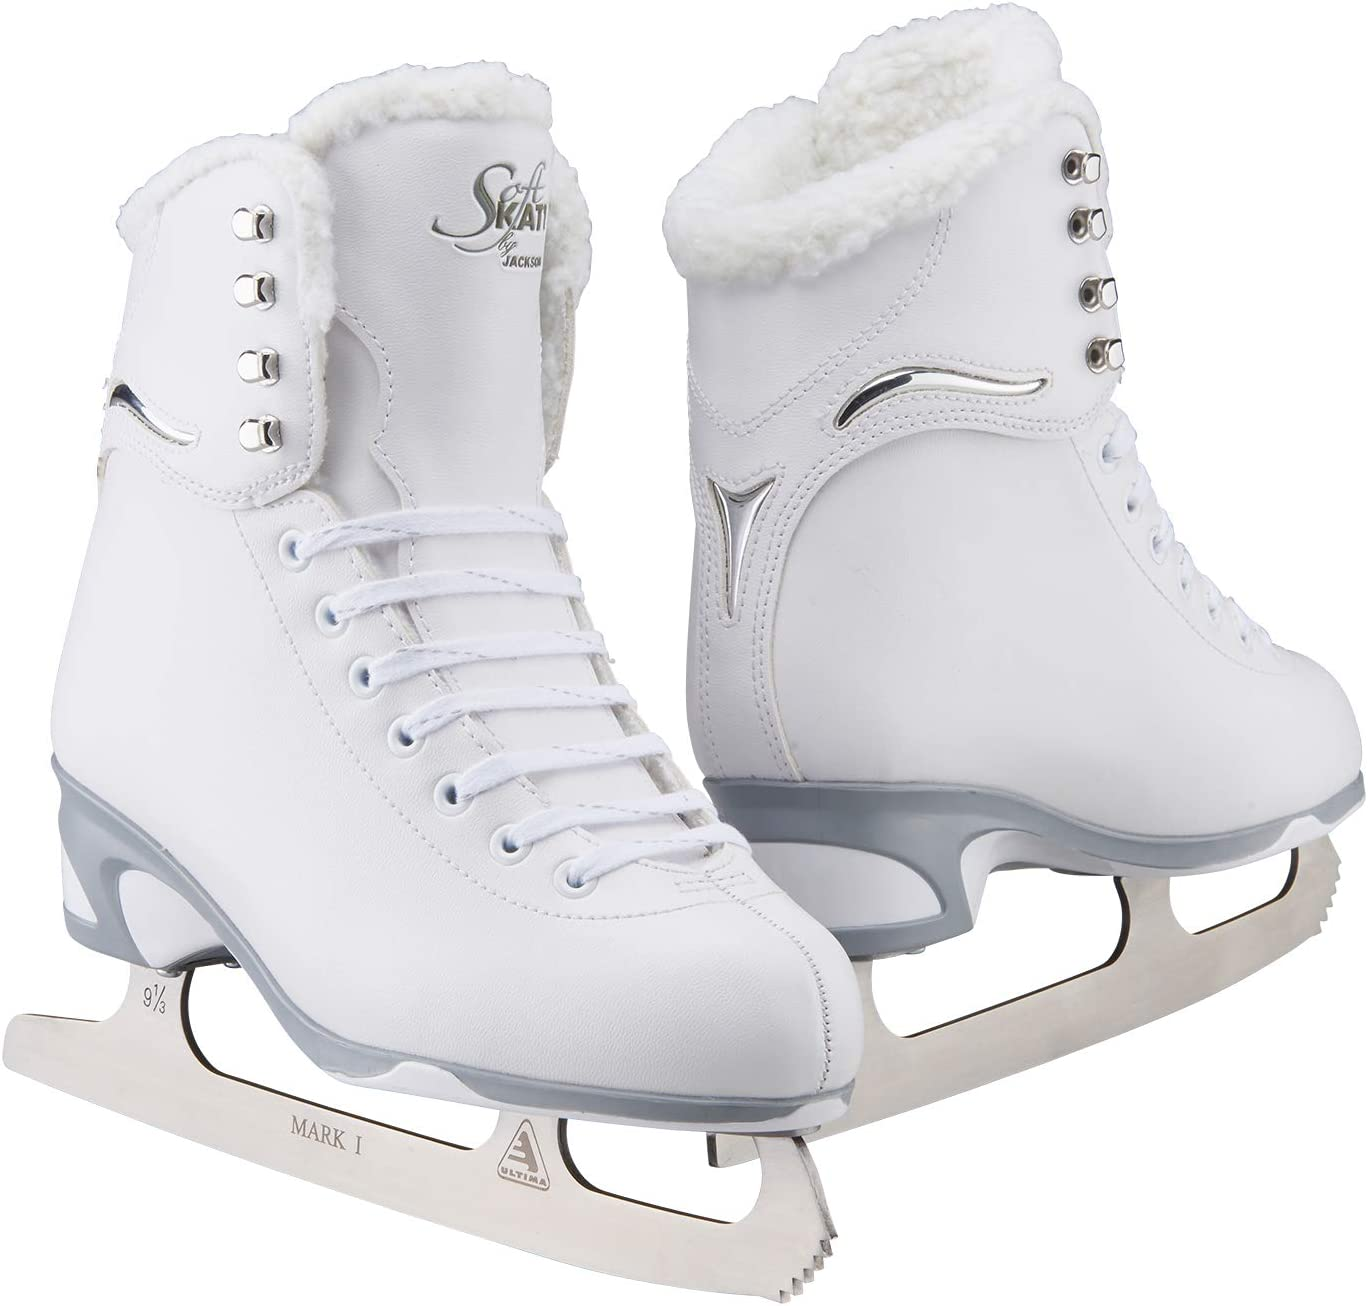 Jackson Figure Ice Skates JS180 JS181 JS184 – For Women and Girls